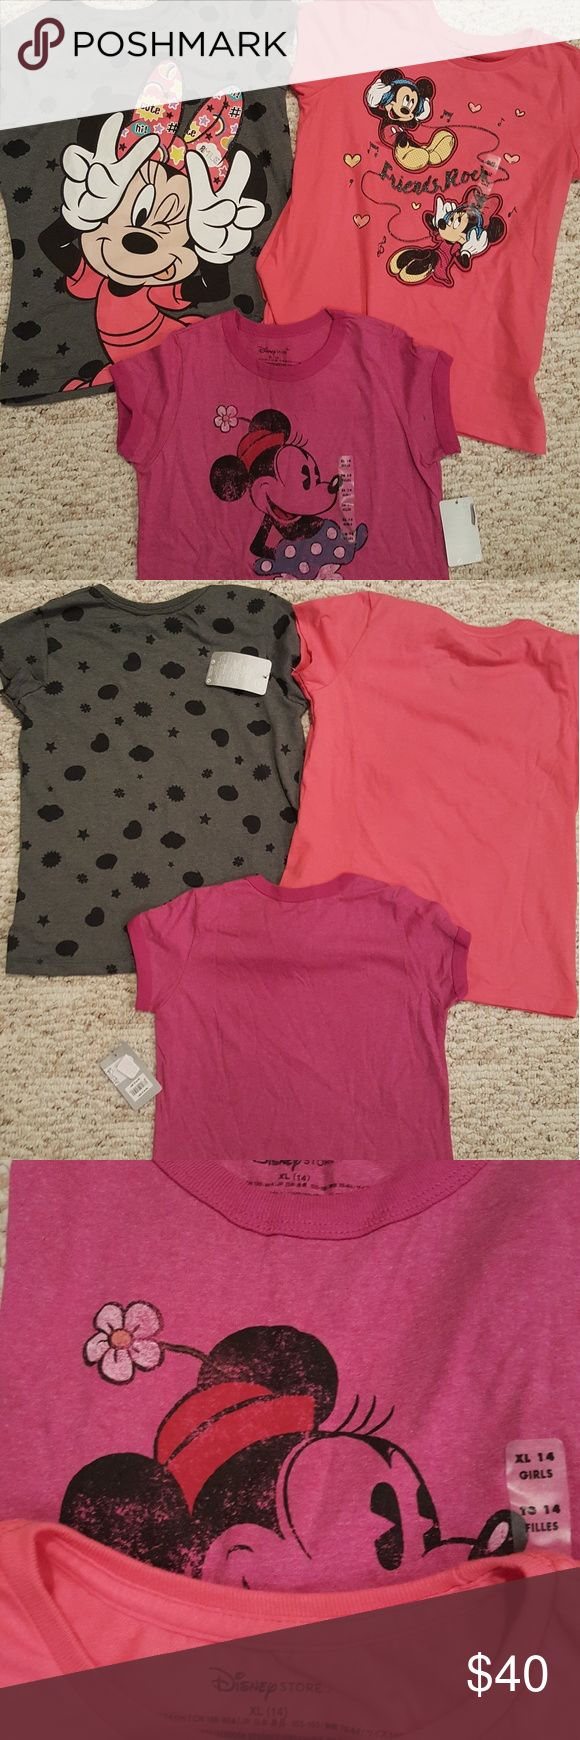 """Disney """"Bundle"""" 3 Minnie Mouse T-shirts NWT!! Three adorable Minnie Mouse T-shirts. Size XL (14)....1. Grey with black shape spot, Minnie is winking. She has one of her fabulous pink bows on with words and characters, too. Shirt 2. Coral in color with Mickey & Minnie jamming with connected headphones and """"Friends Rock"""" is scripted between them. Shirt 3. Old fashioned Minnie wearing her flowered hat and yellow clog heels on a pink T-shirt. All T-shrts should make magic in any girls heart! All…"""